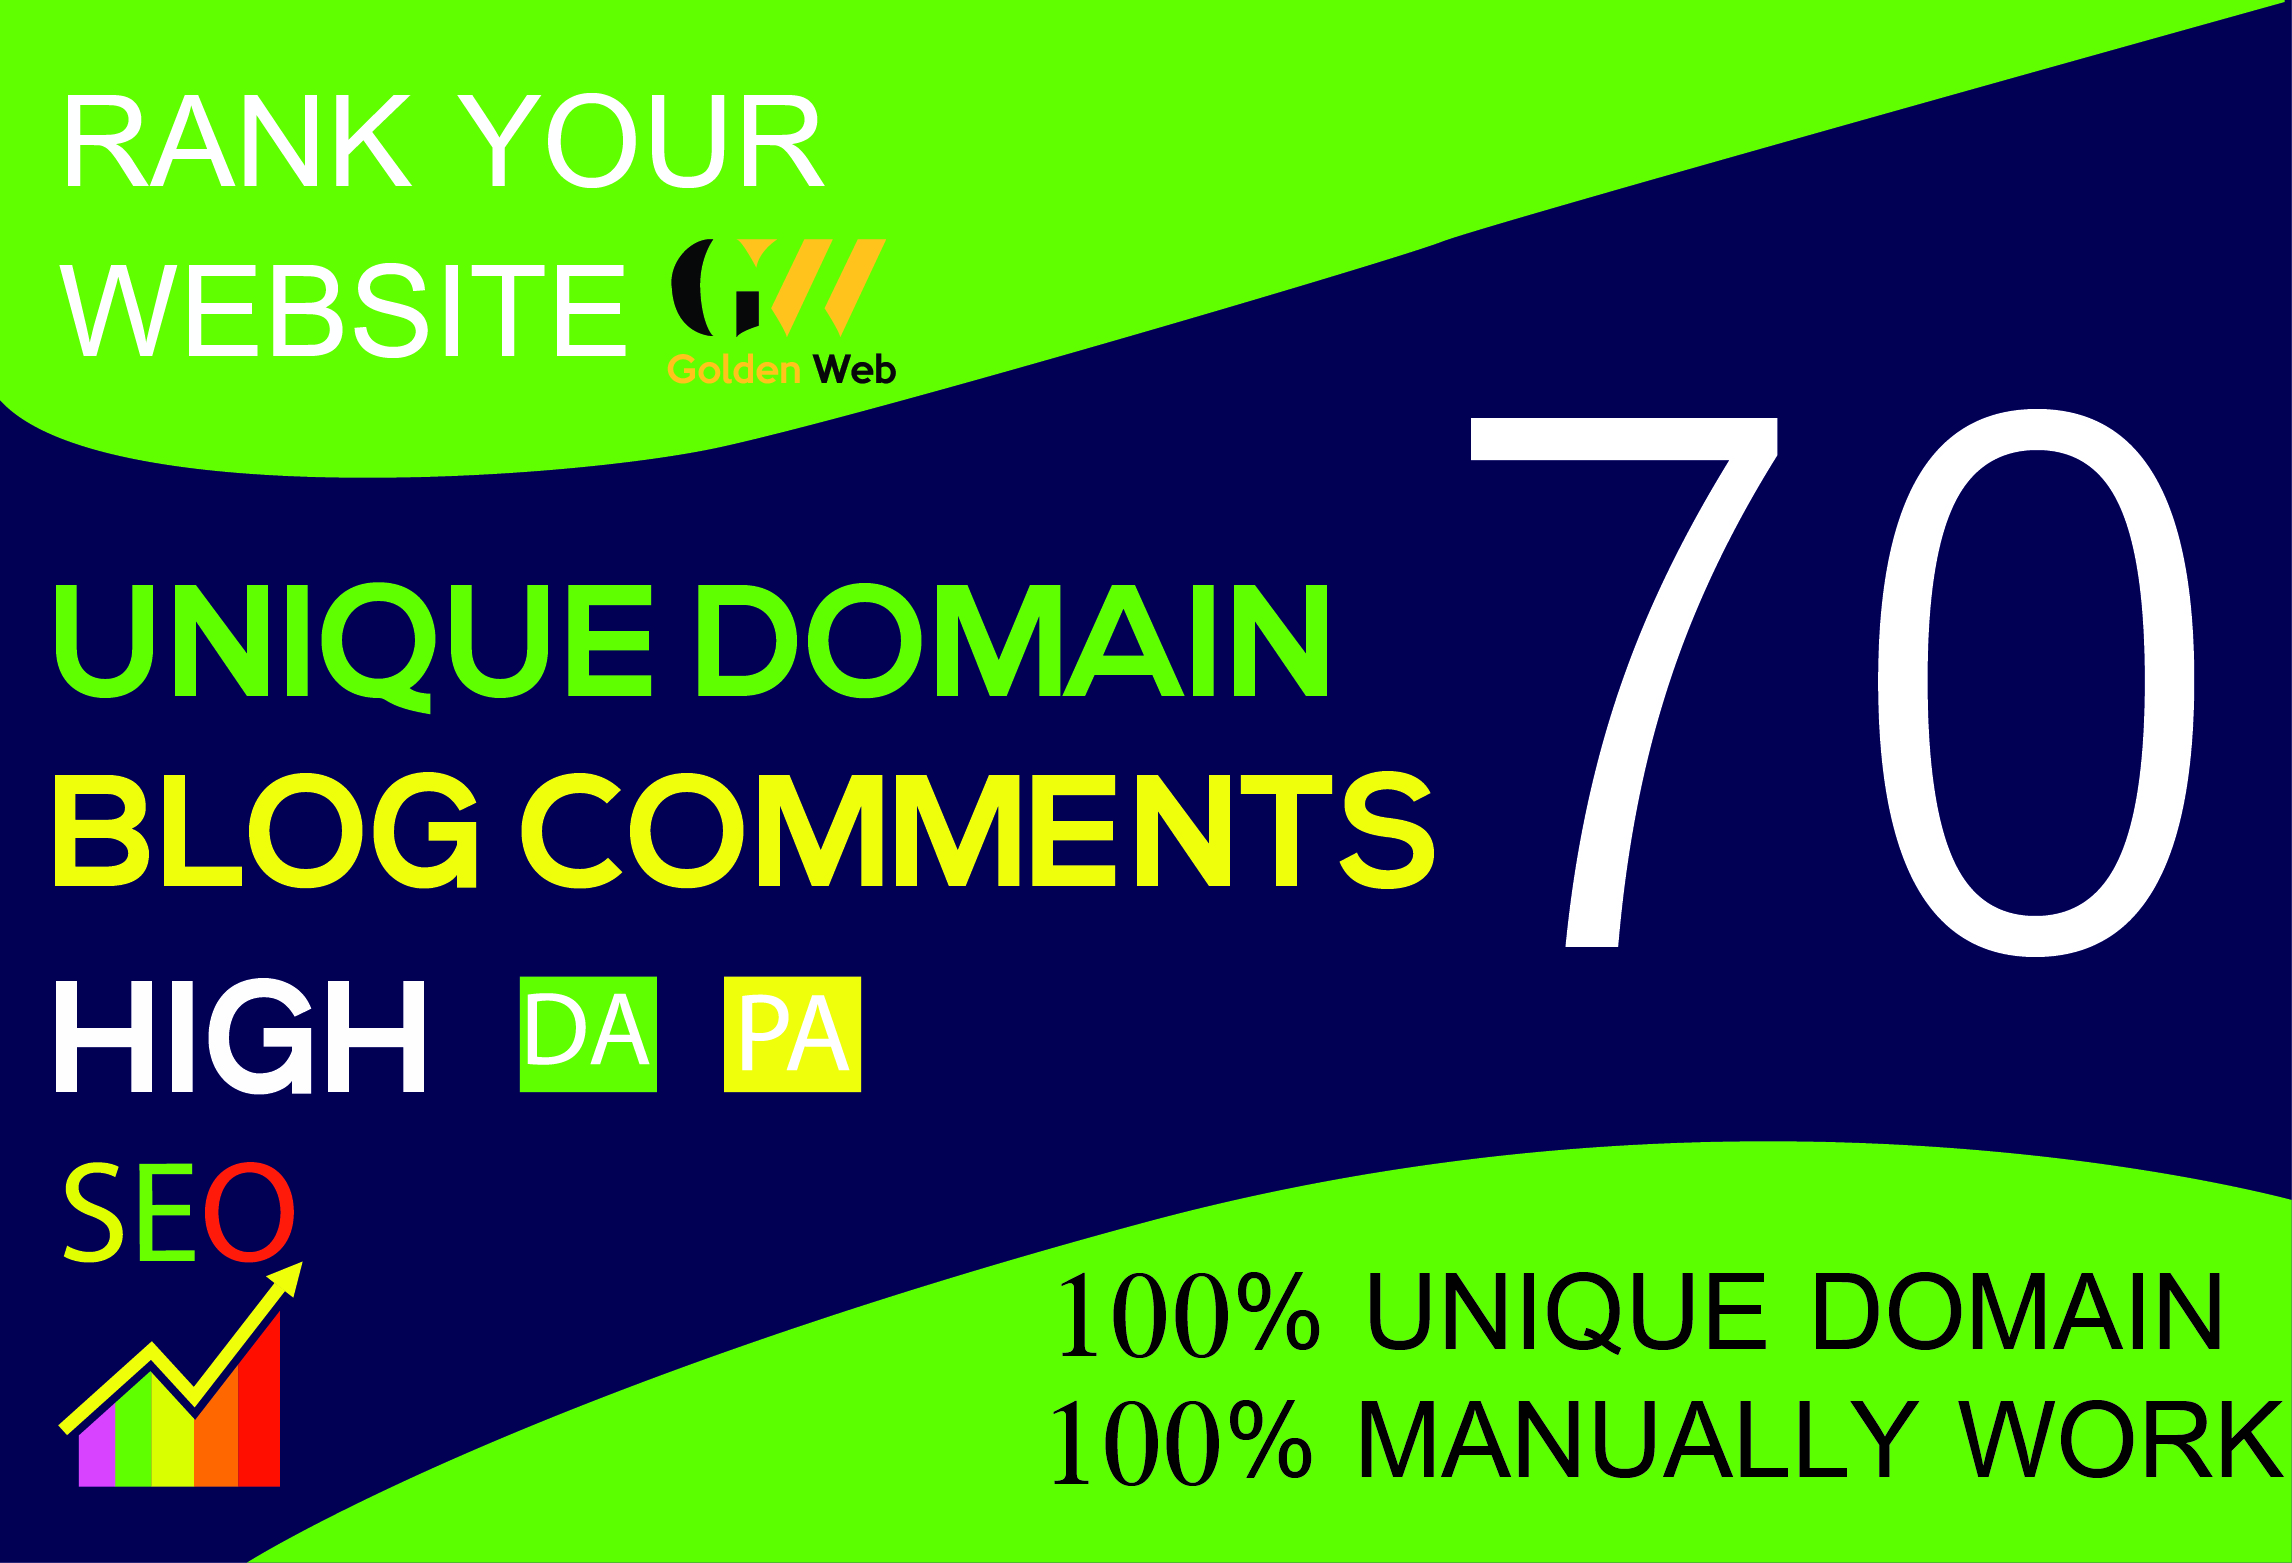 I will do 70 Unique domain blog comments on high authority dofollow backlinks